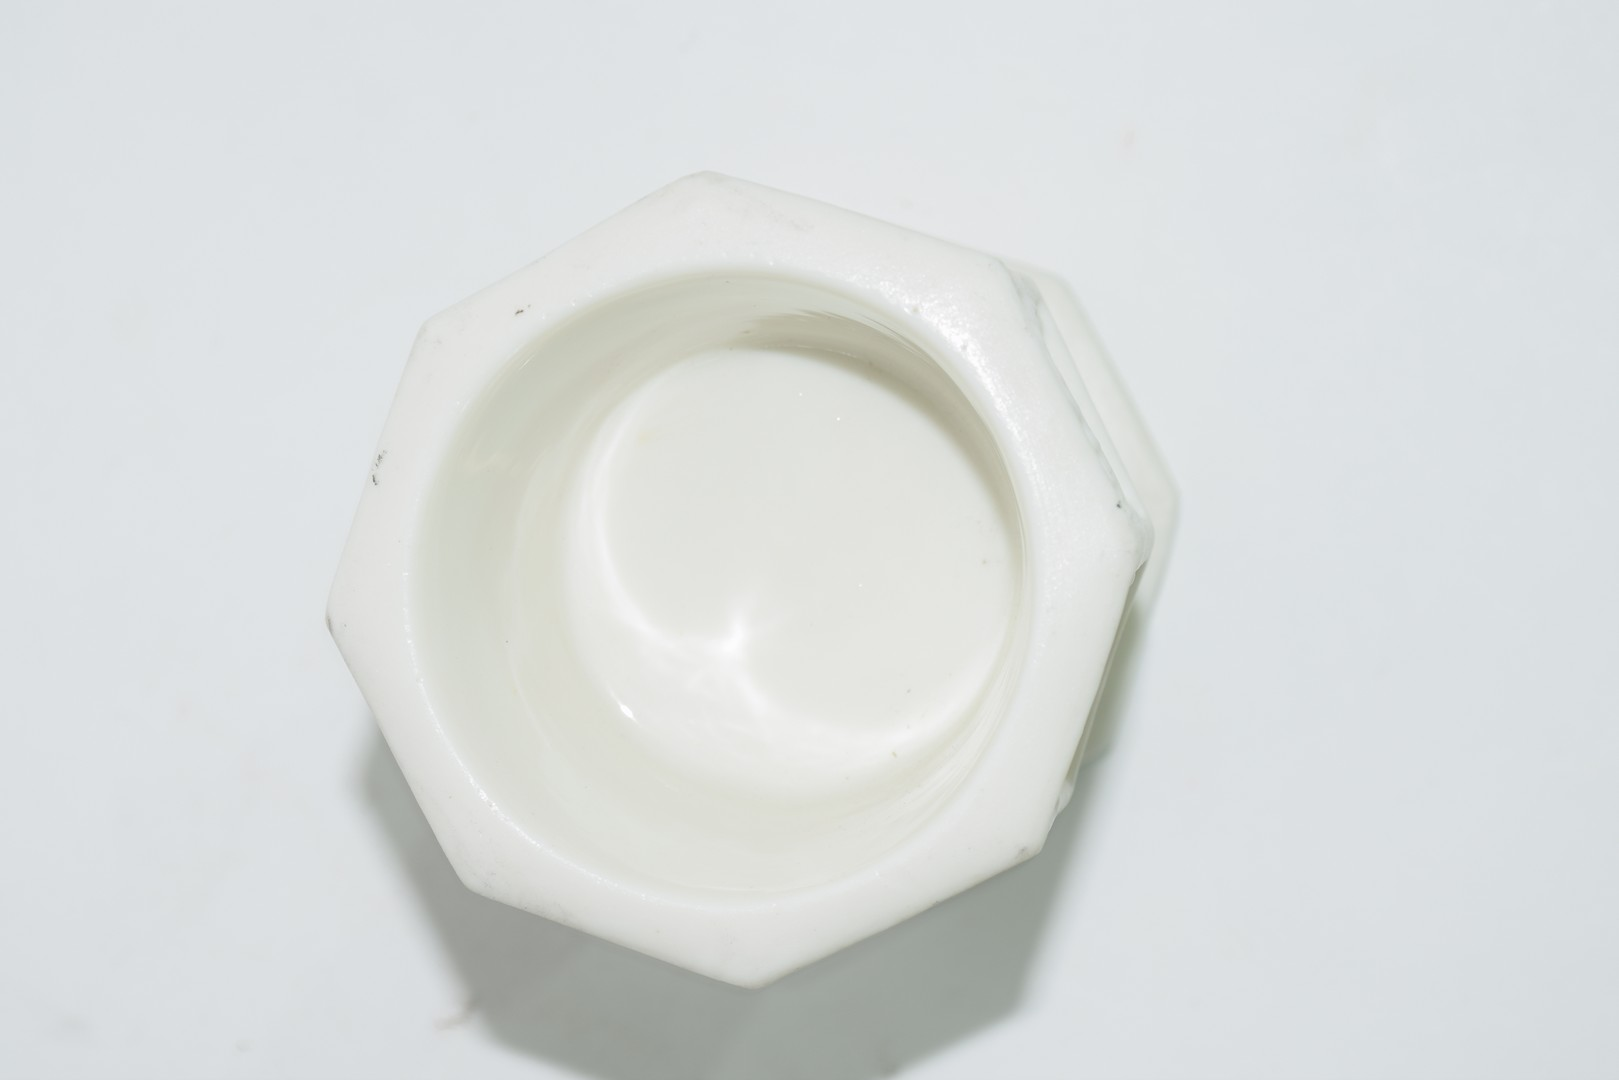 19th century Minton Parian ware model of a font - Image 5 of 7